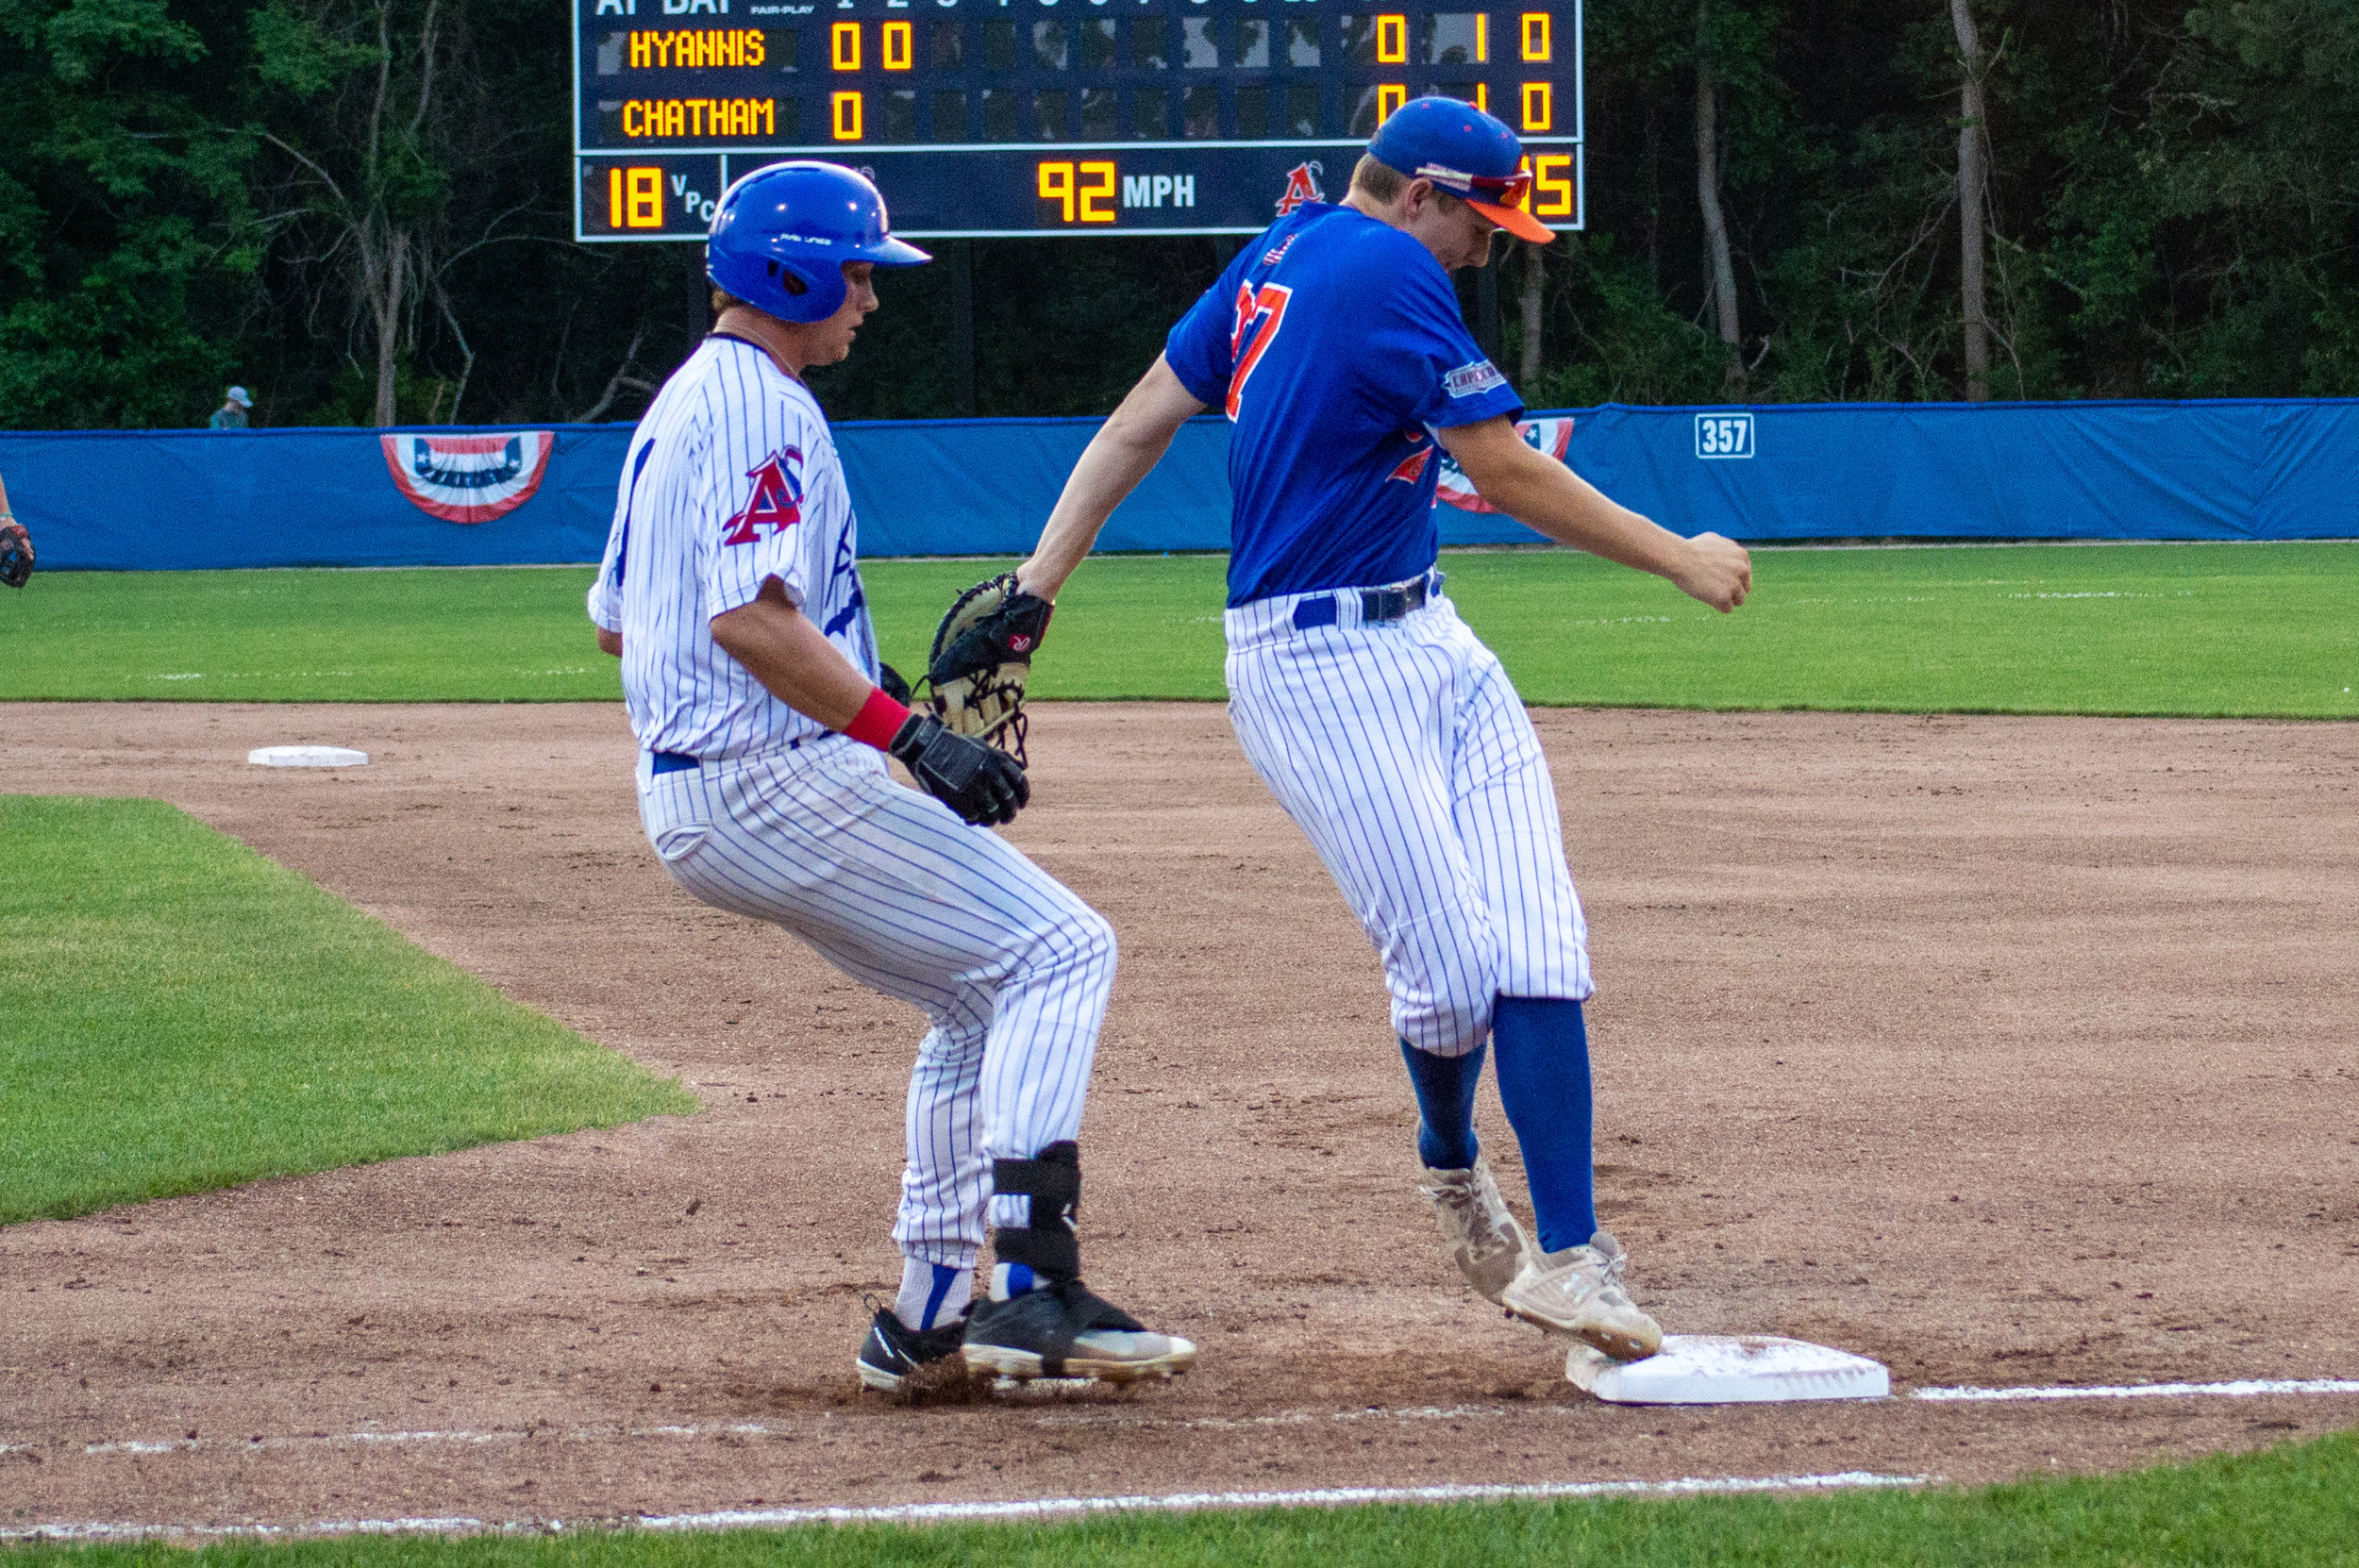 Fair tiptoes back to first base in a game against the Chatham Anglers.  Photo by Matt Neiser.